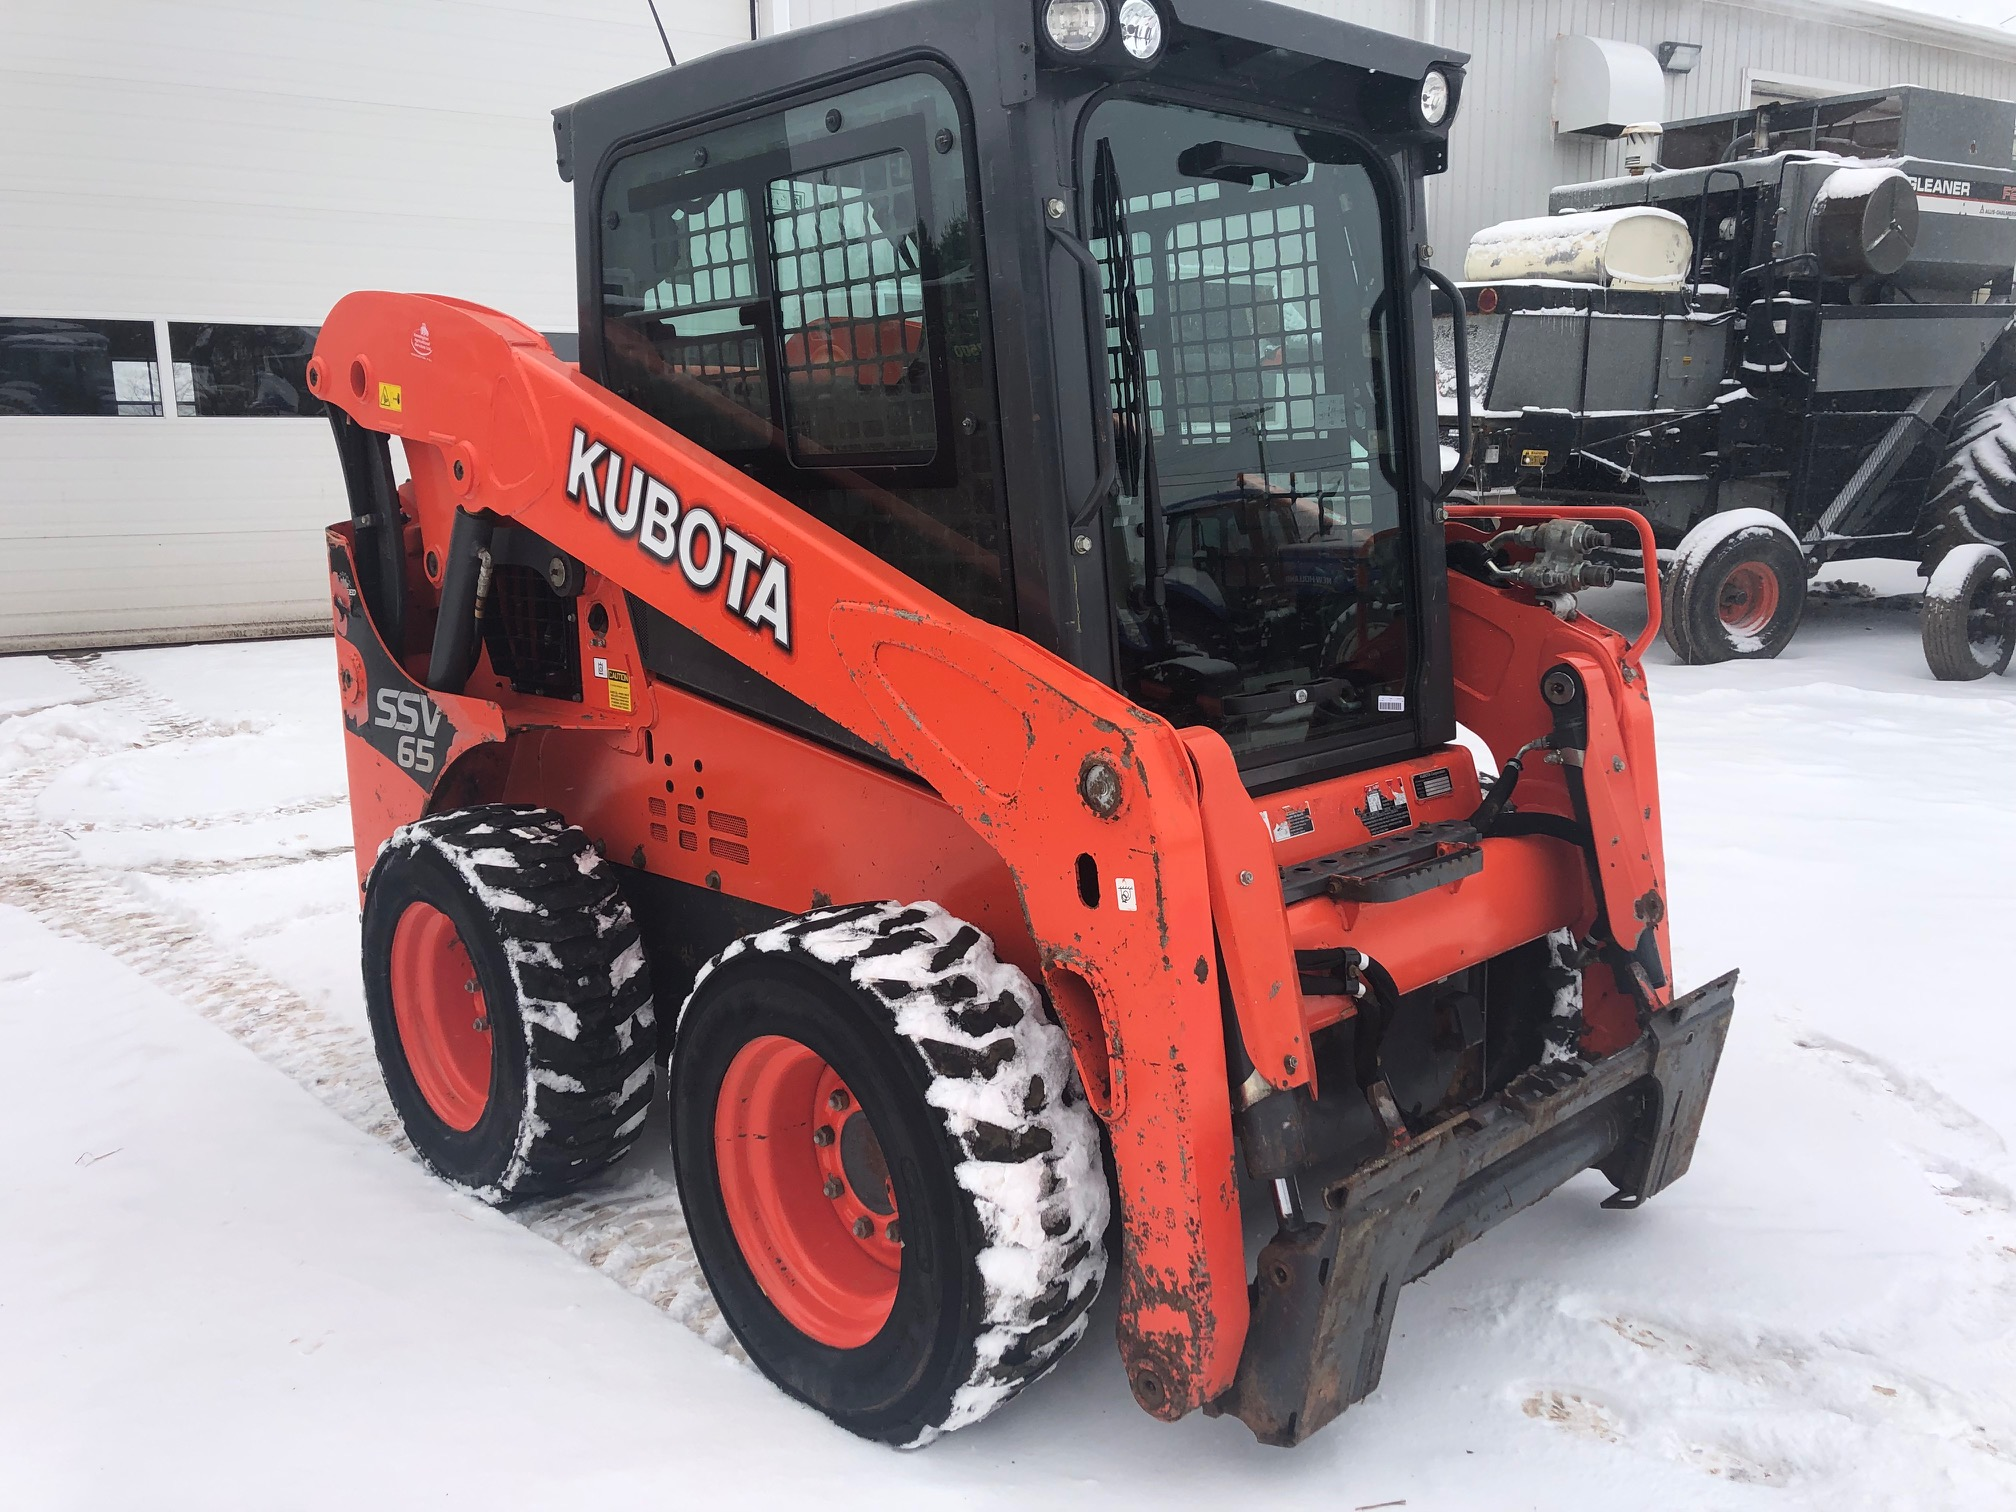 Kubota Skid Steer Error Codes